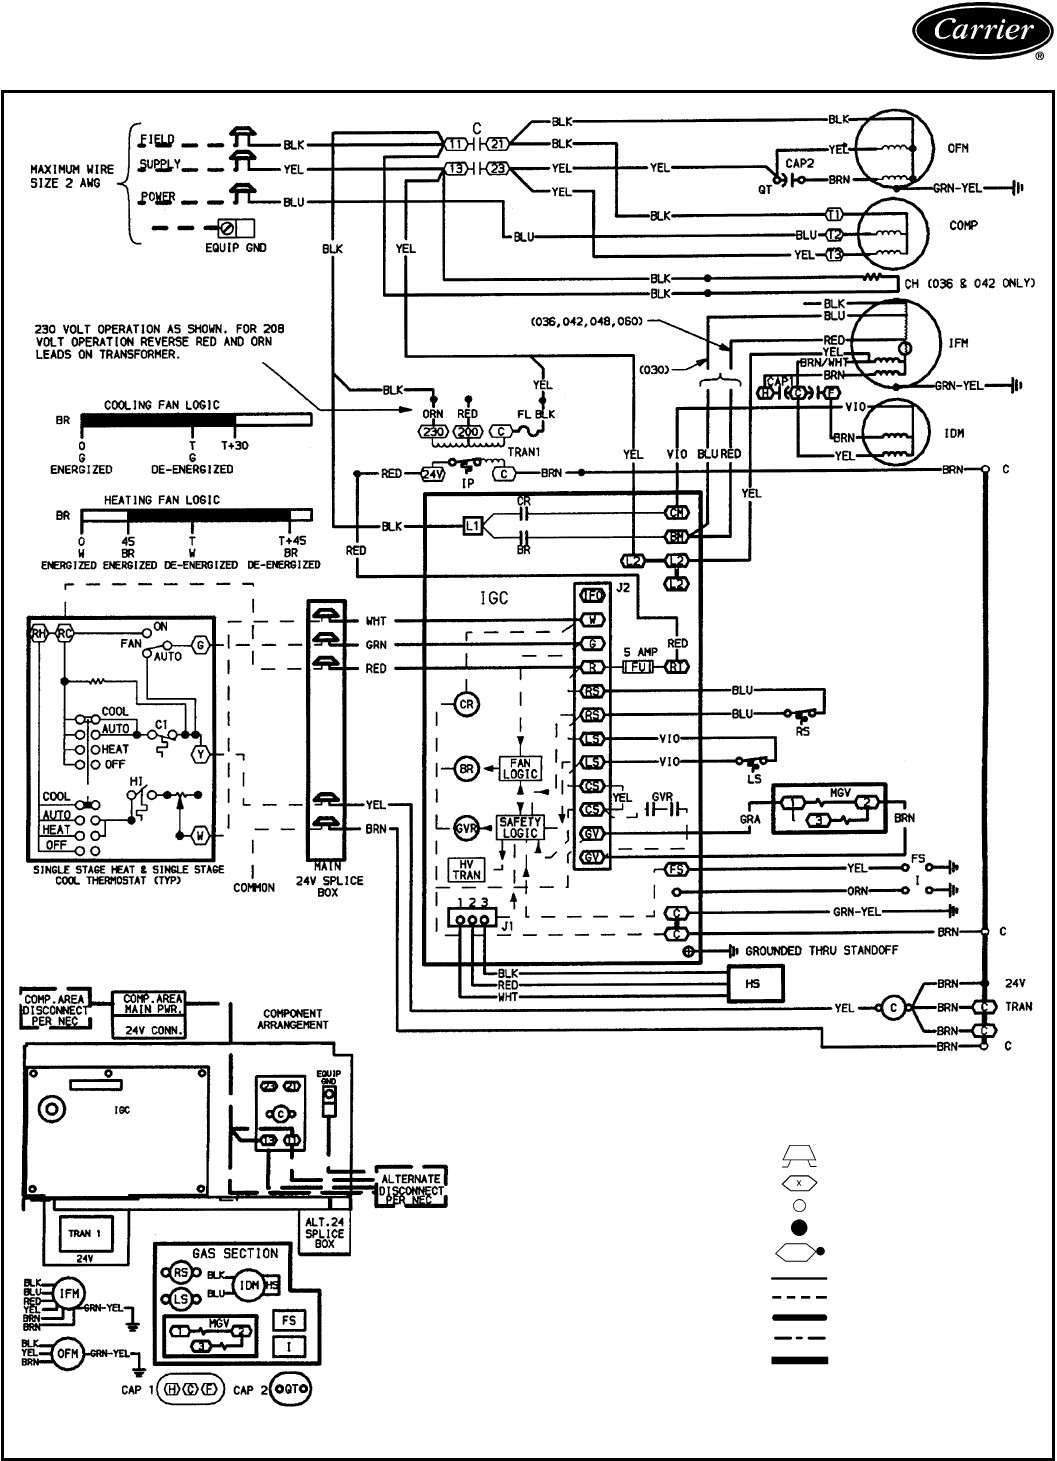 hight resolution of carrier infinity 98 furnace installation manual user guide manual tempstar gas furnace wiring diagram carrier 58sta